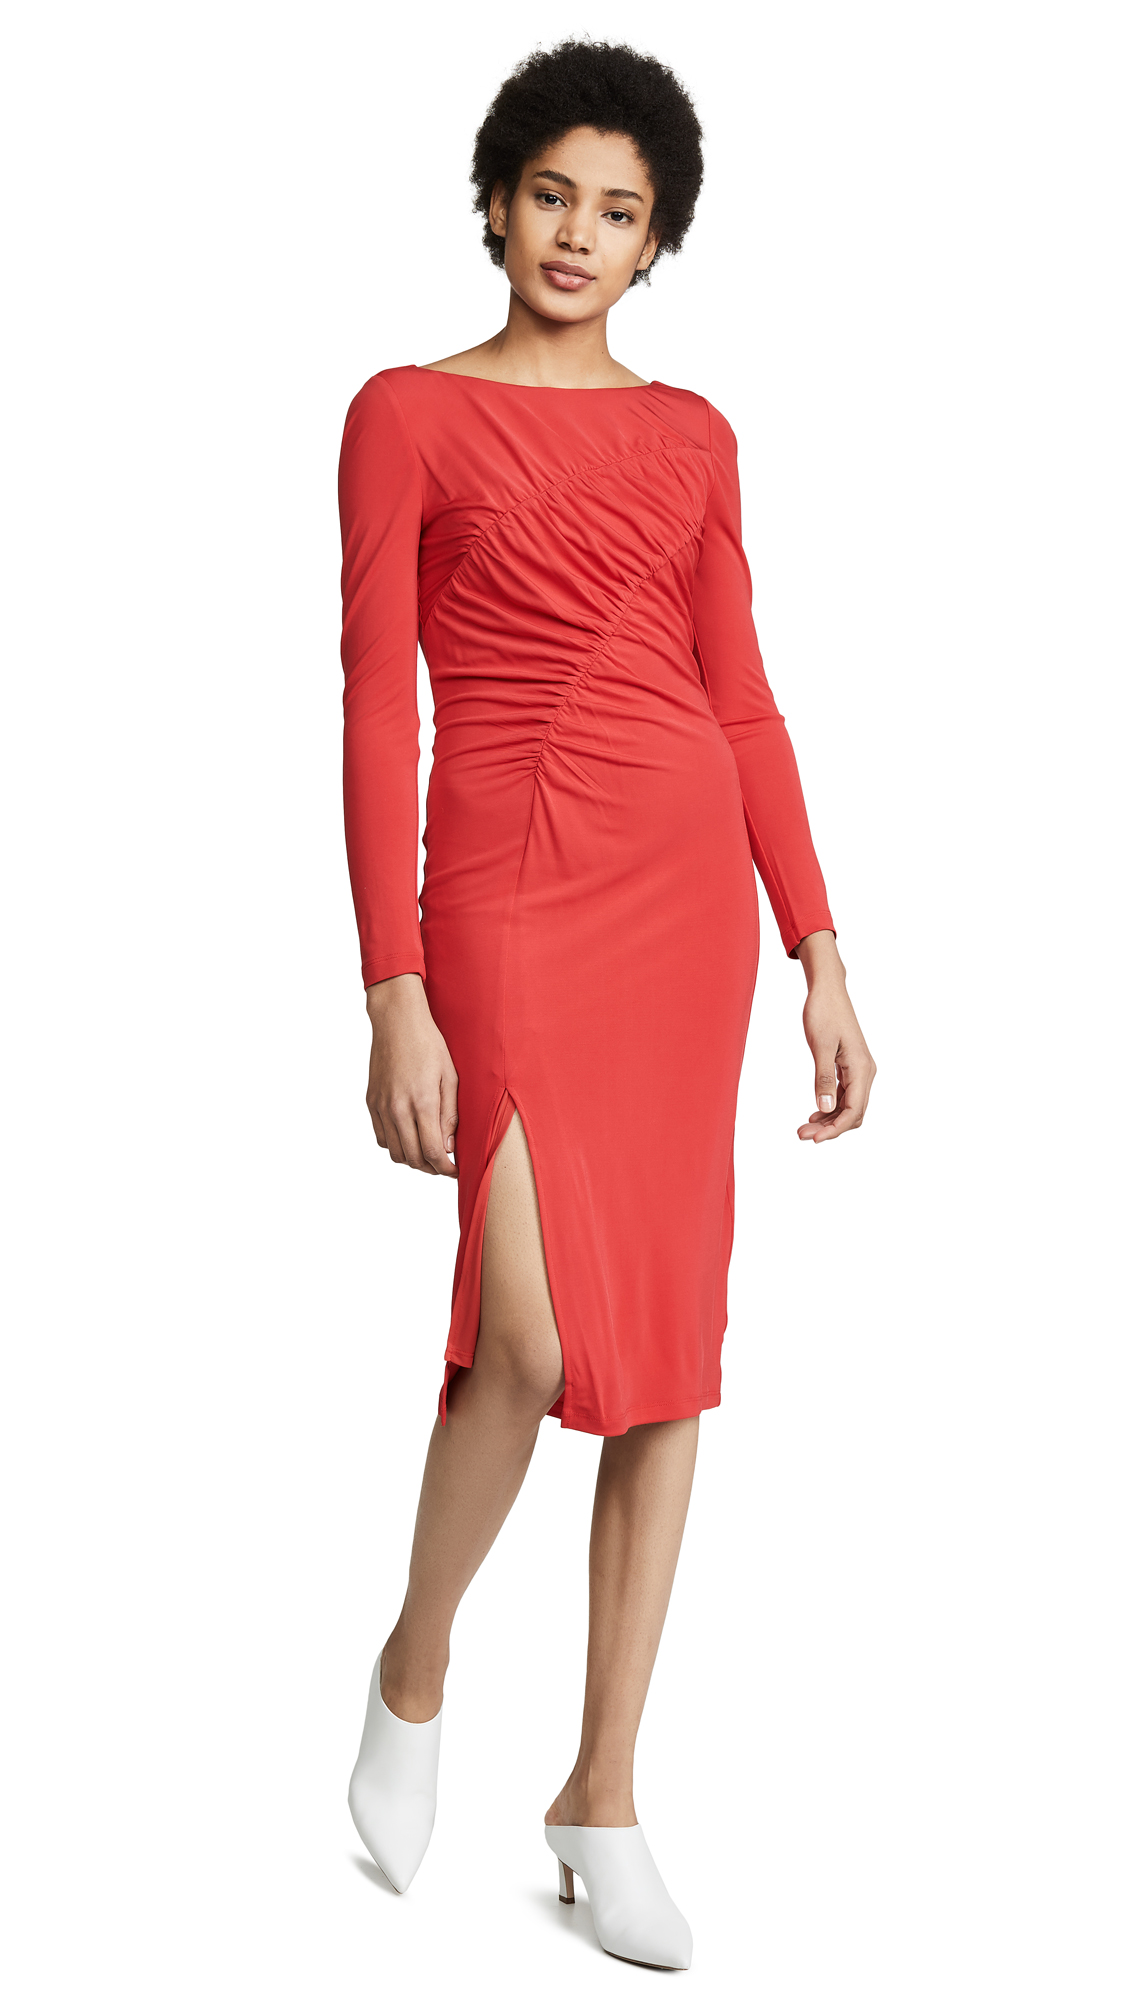 Rachel Zoe Fabiana Dress - Poppy Red